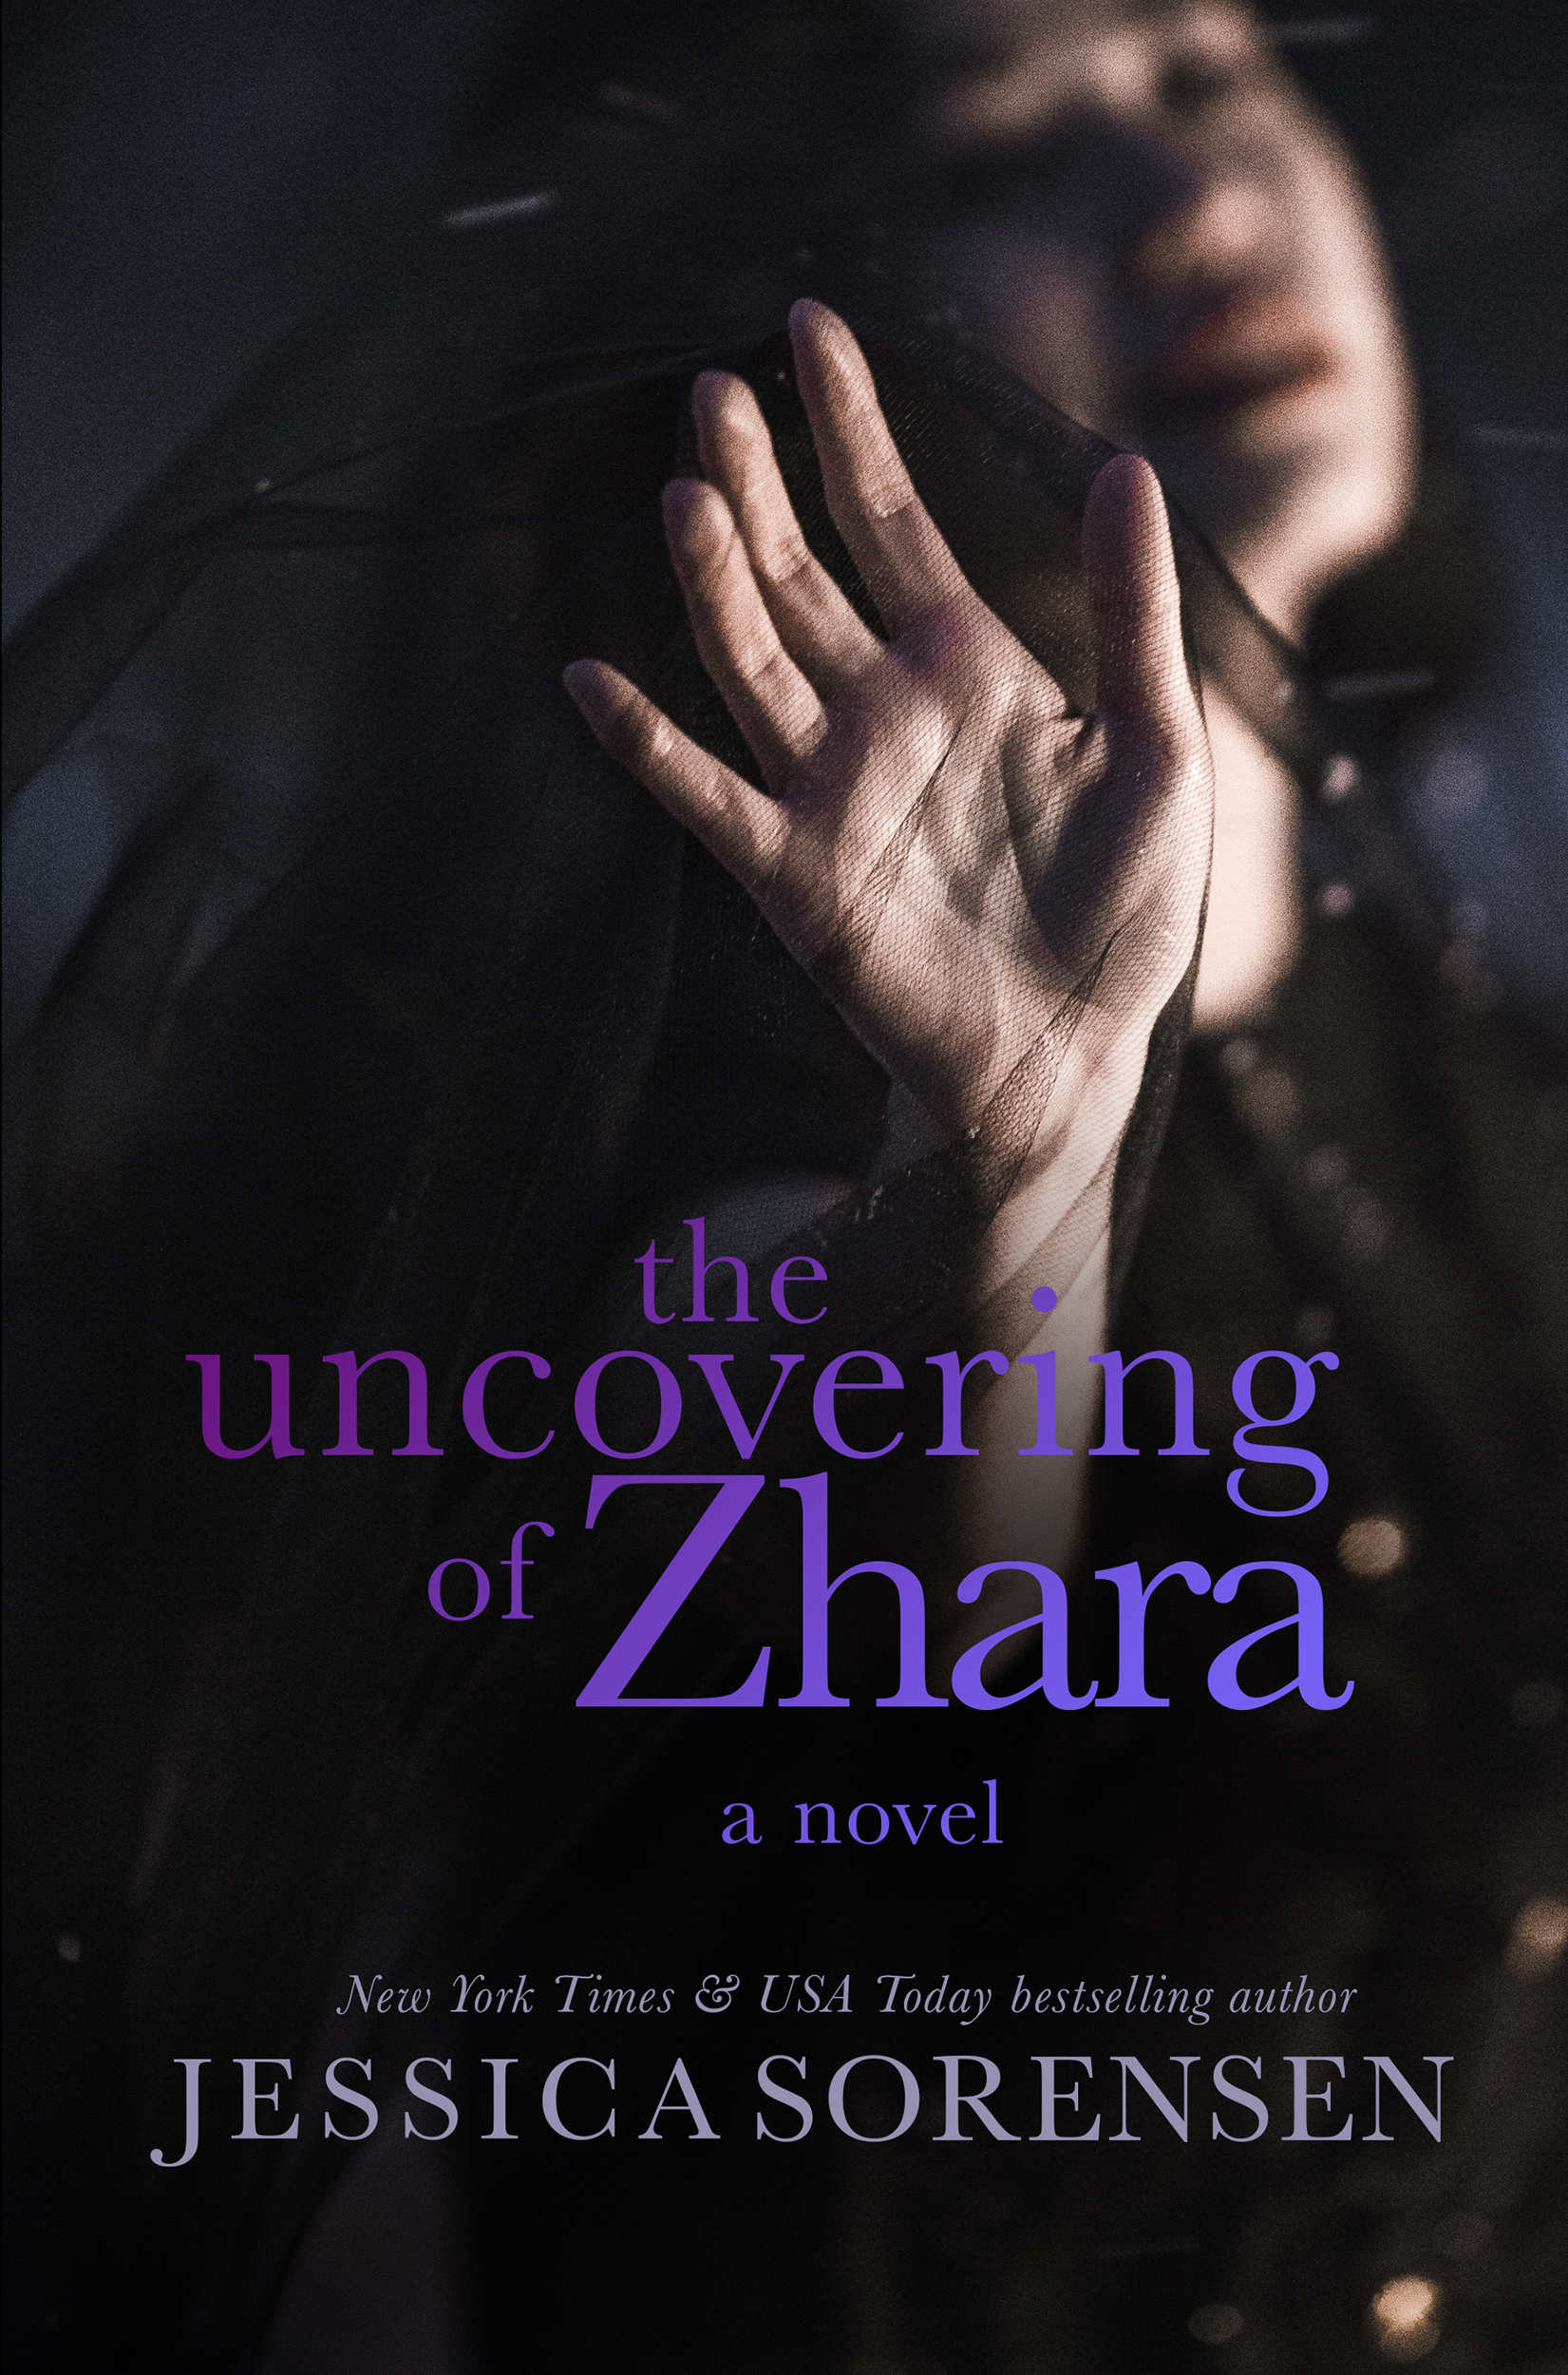 Uncovering of Zhara-ebooklgl